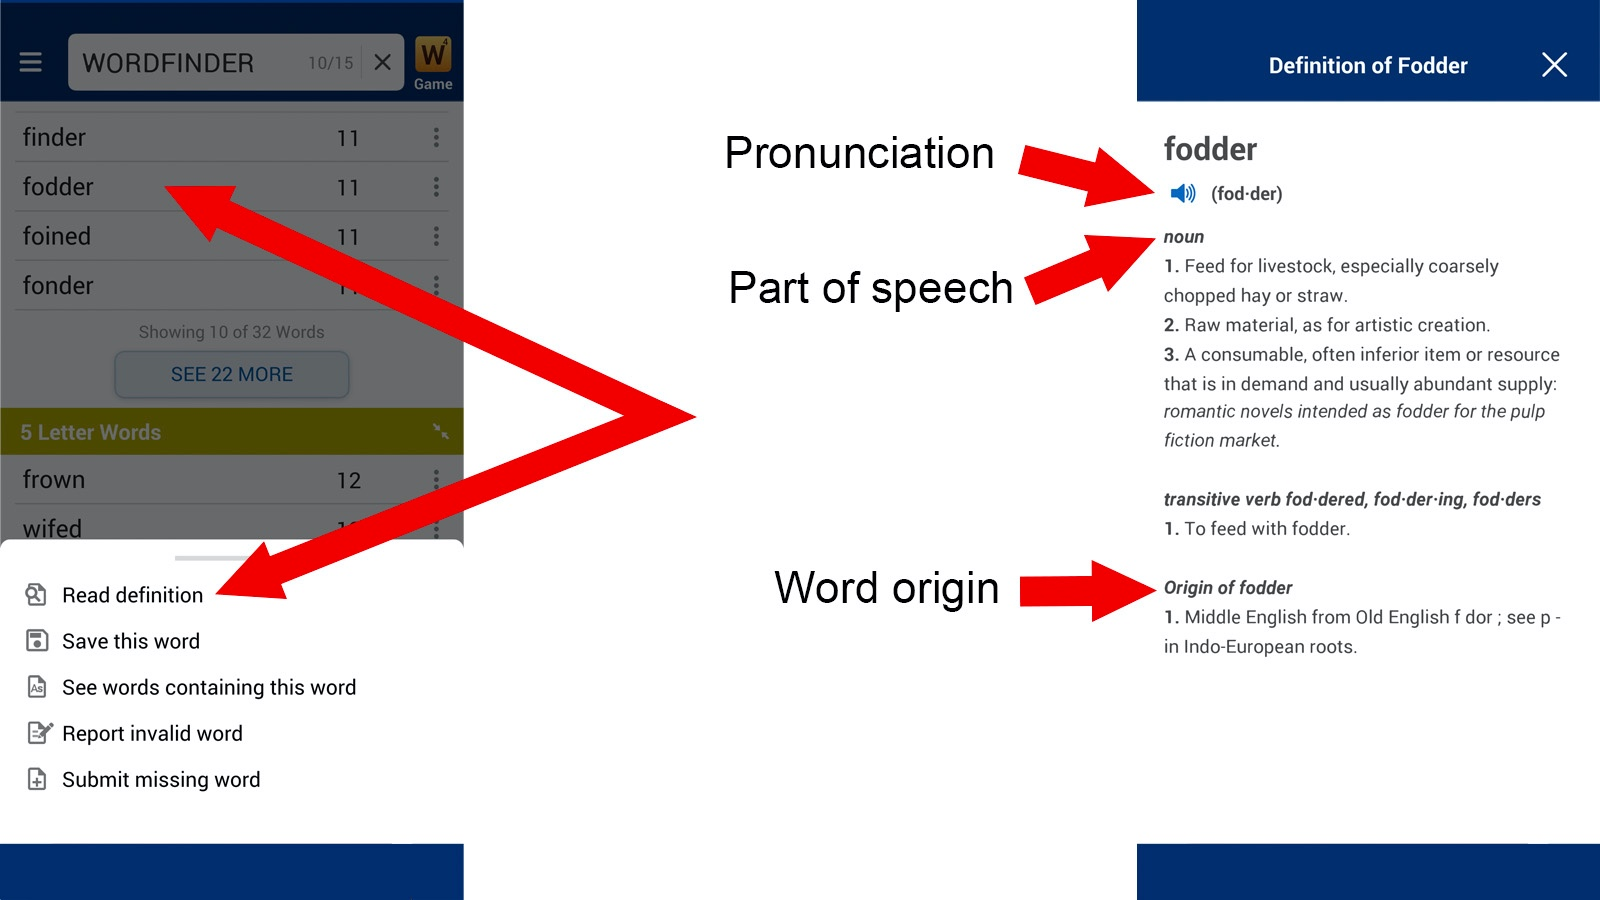 Wordfinder App word definition instructions